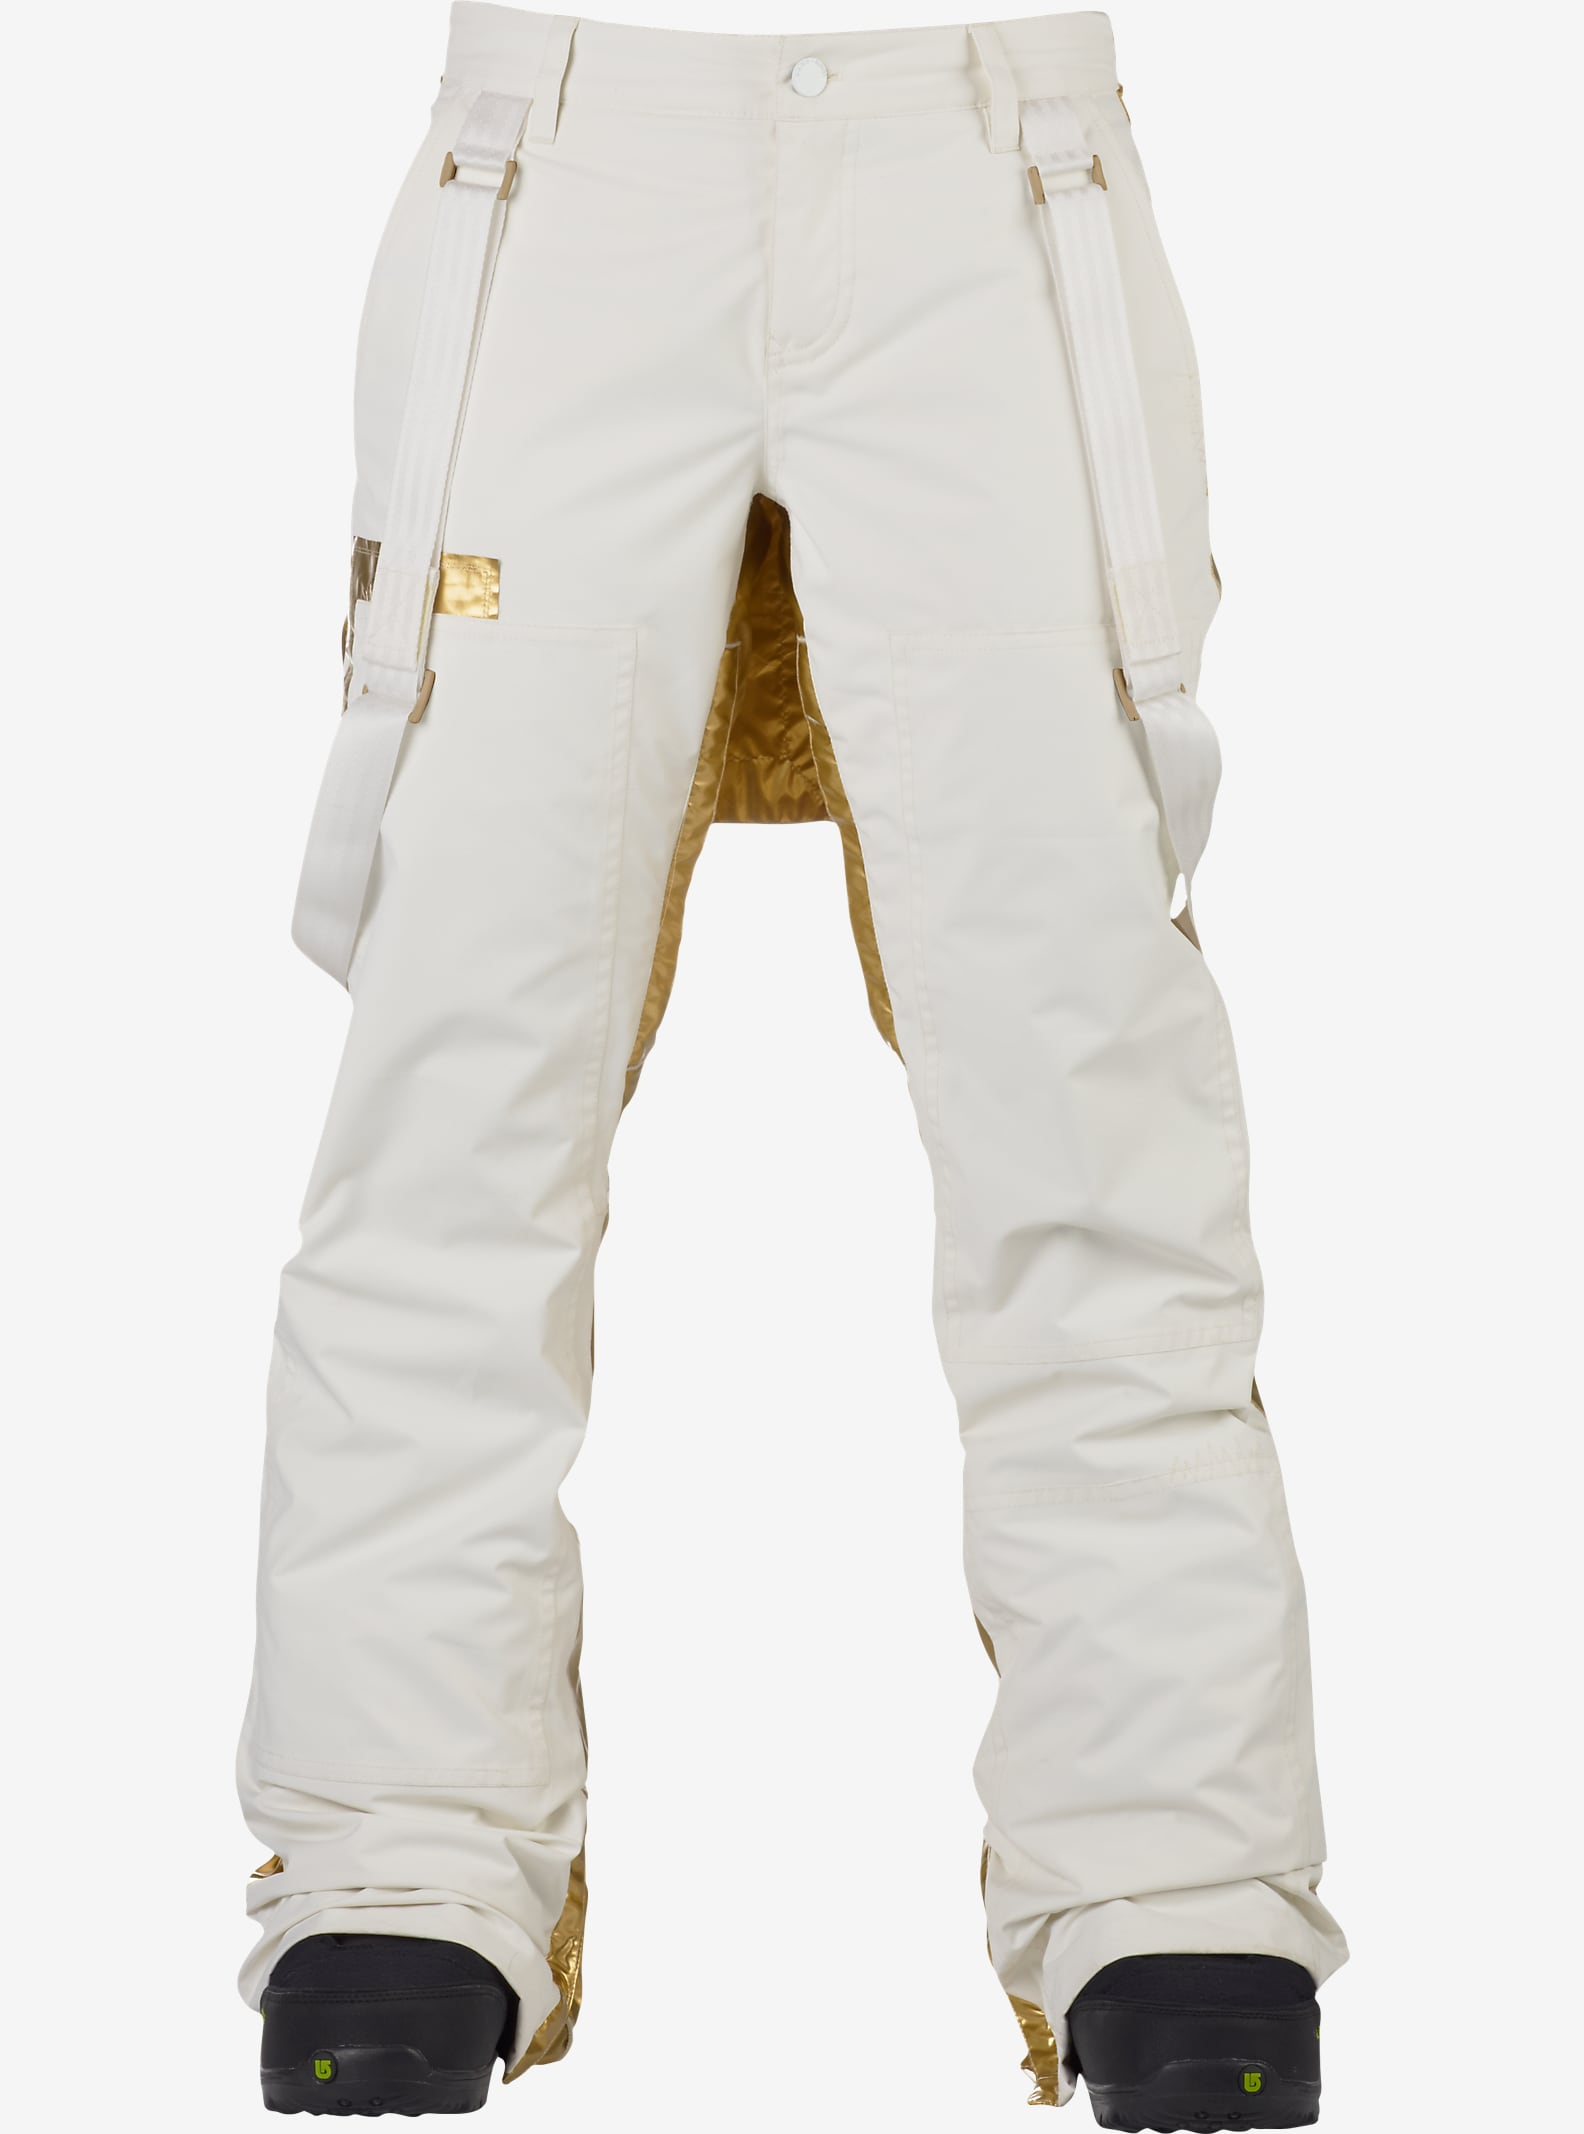 L.A.M.B. x Burton Johnny Hose angezeigt in Stout White / Gold